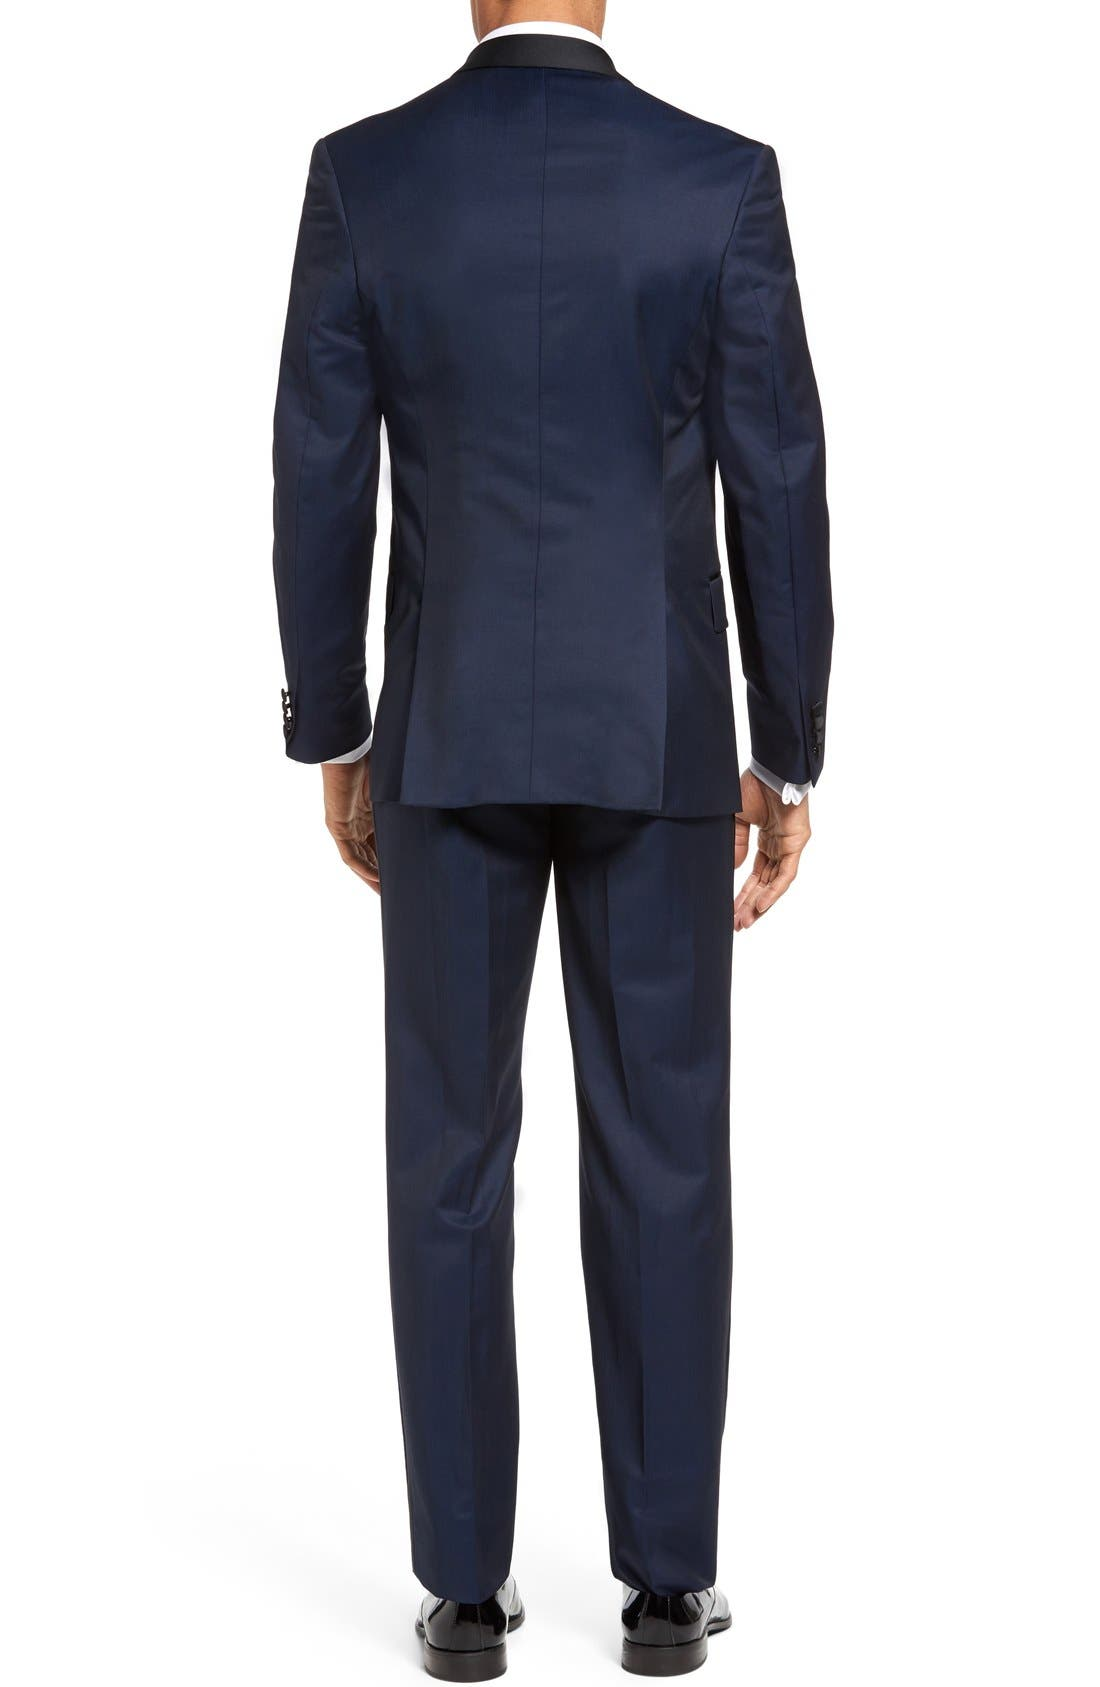 TED BAKER LONDON, Josh Trim Fit Navy Shawl Lapel Tuxedo, Alternate thumbnail 3, color, NAVY BLUE